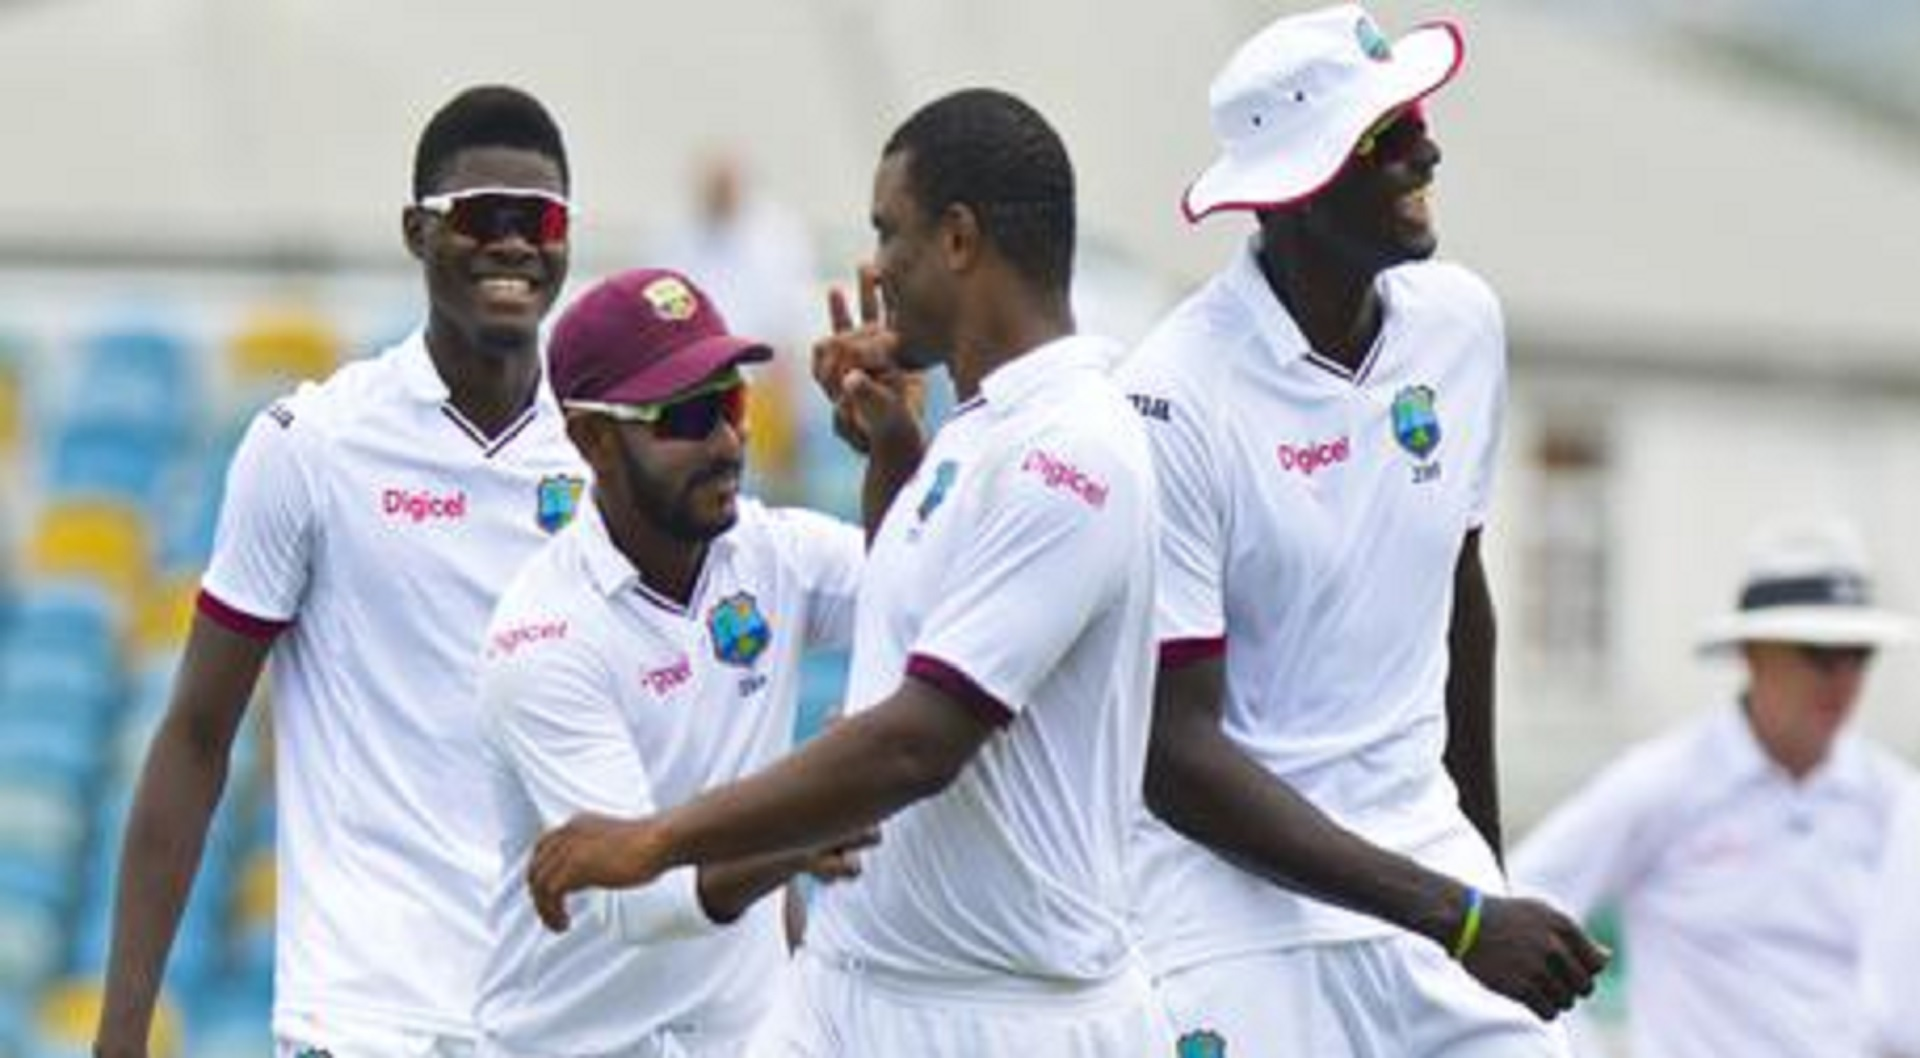 West Indies speedster Shannon Gabriel (centre) celebrates with teammates after taking a wicket on the final day of the second Test against Pakistan on Thursday. Gabriel ended with five for 11 from 11 overs to lead West Indies to a 106-run victory.